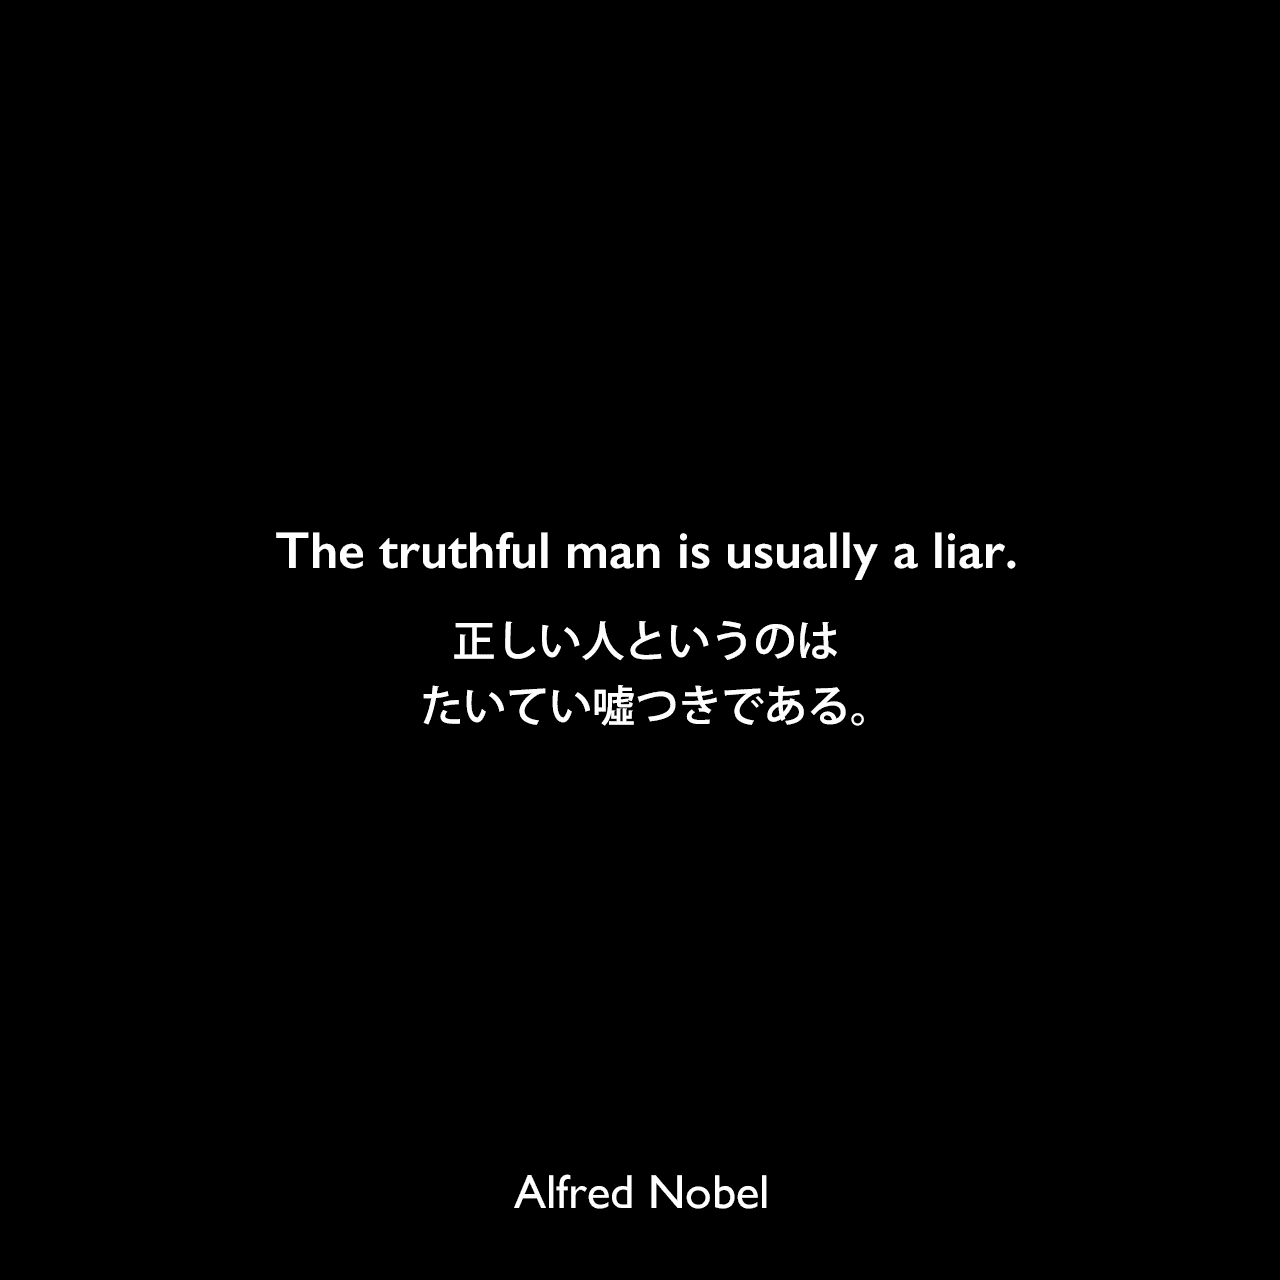 The truthful man is usually a liar.正しい人というのは、たいてい噓つきである。Alfred Nobel